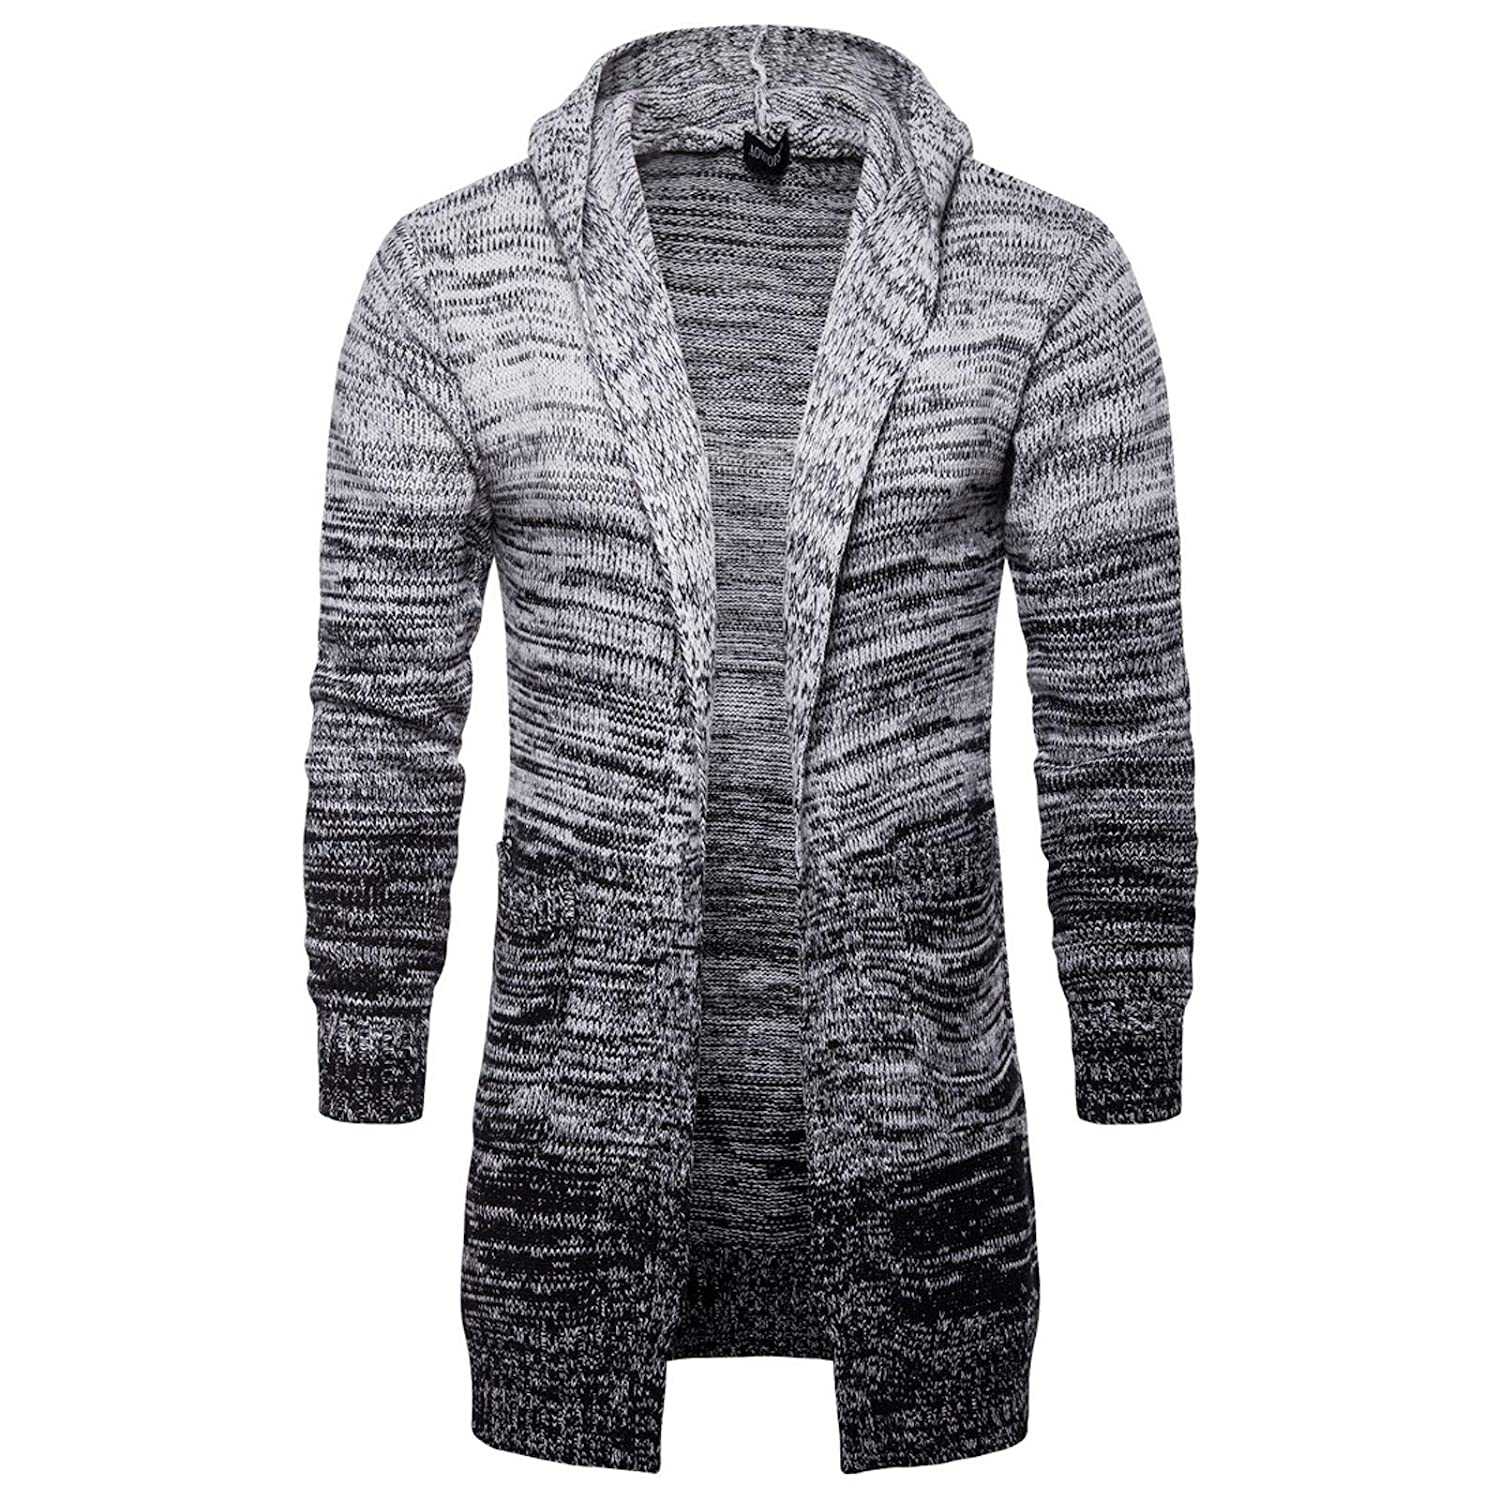 Elonglin Mens Cardigan Sweaters Outerwear Long Sweaters Hooded Knitted Open Edge Thicker Cardigan EL.AW-Y913